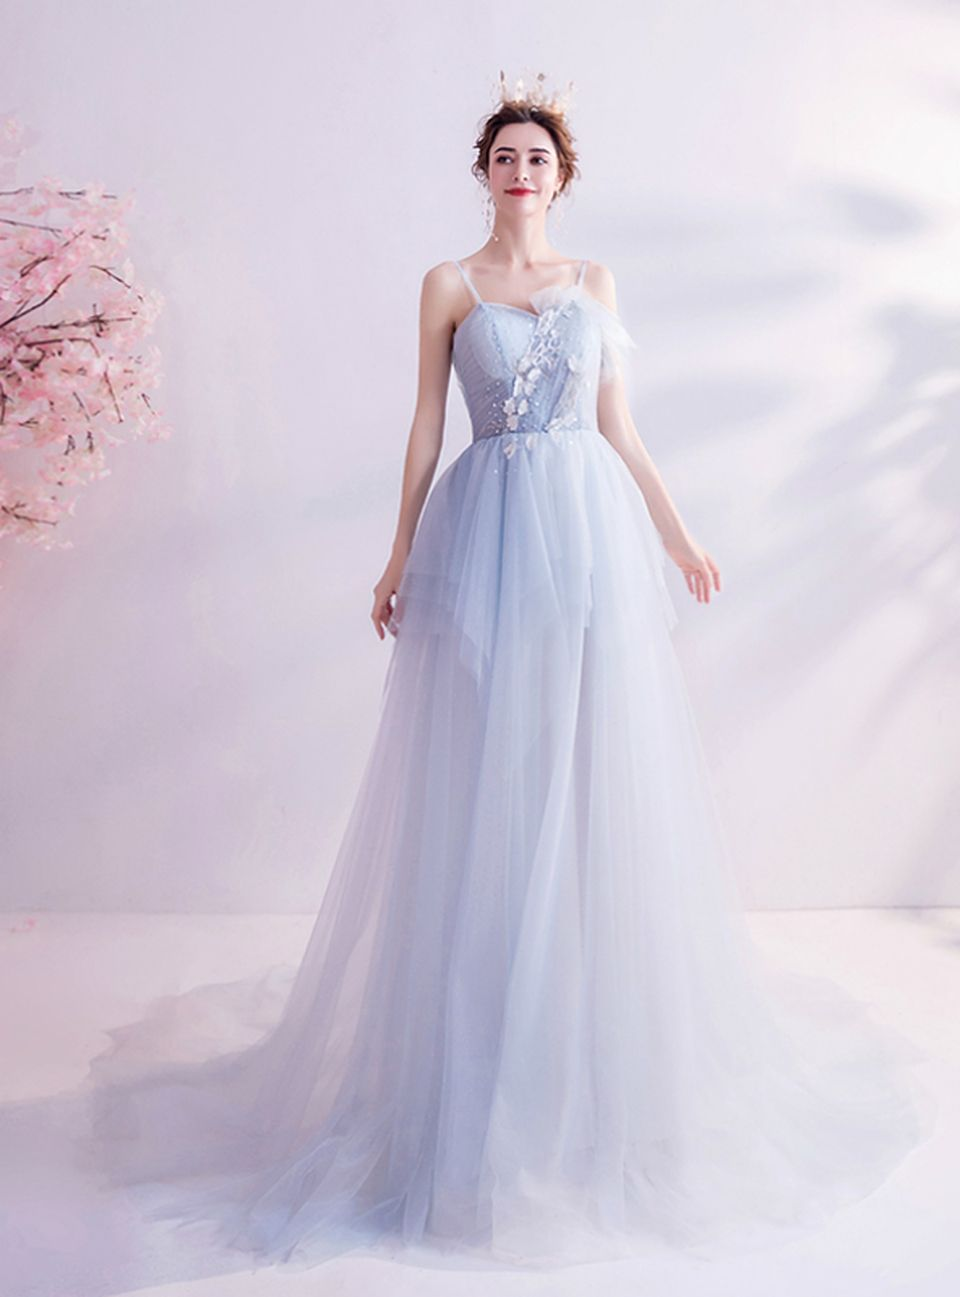 In Stock Ship In 48 Hours Light Blue Tulle Spaghetti Straps Prom Dress Prom Dresses Spaghetti Strap Prom Dress Straps Prom Dresses [ 1297 x 960 Pixel ]